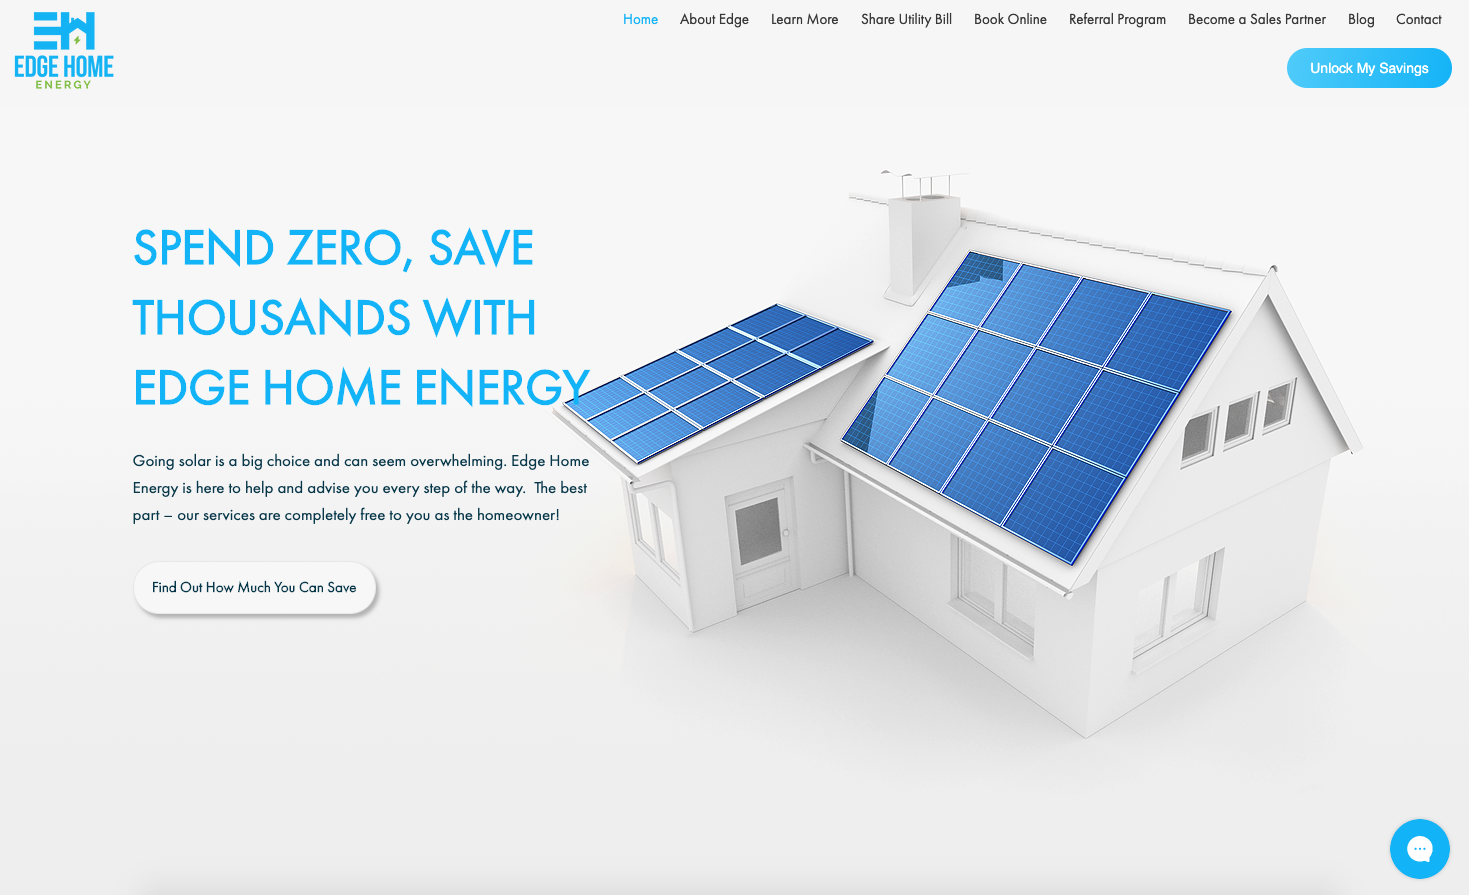 Edge Home Energy